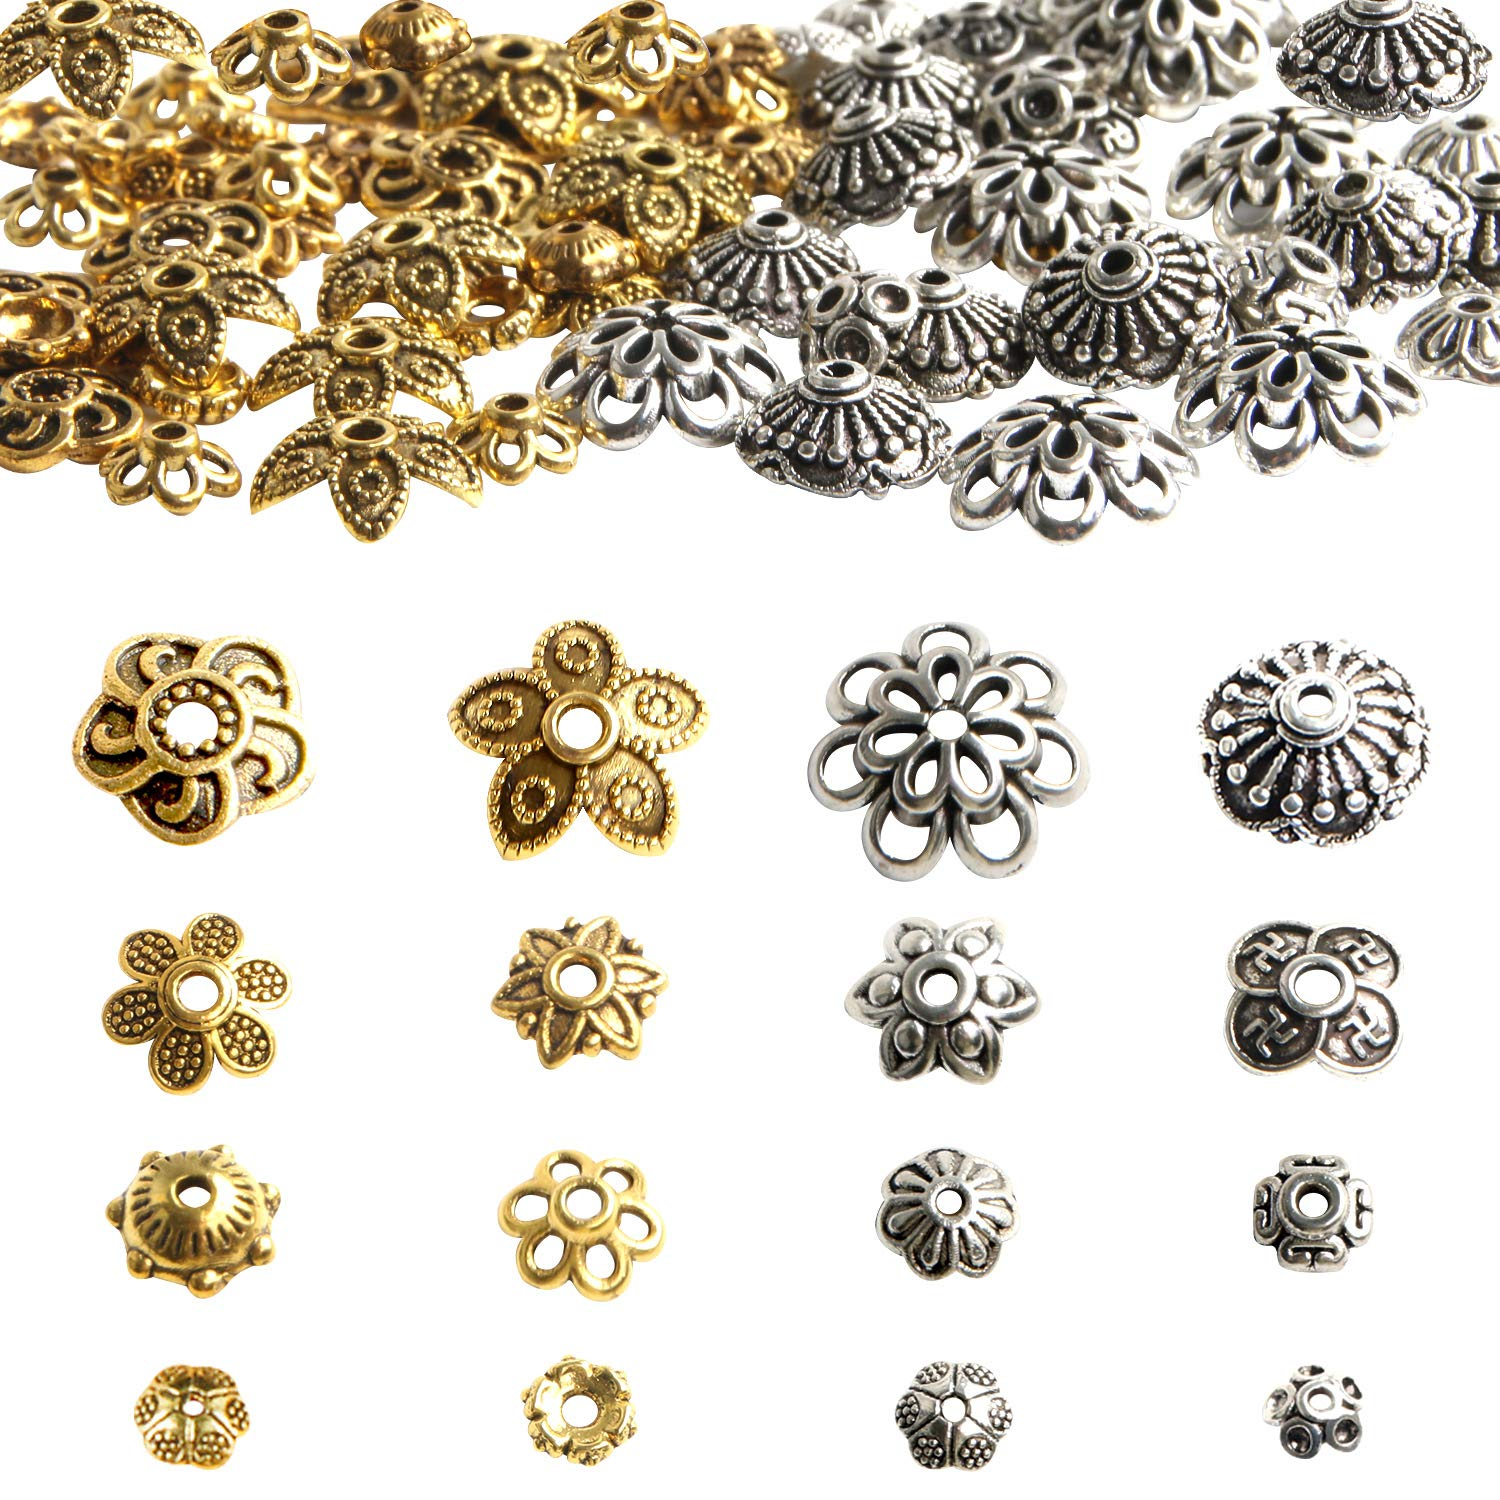 200pcs Top Quality Pretty Filigree Flower 8mm Bead Caps Gold Plated Brass for Jewelry Craft Making CF174-8